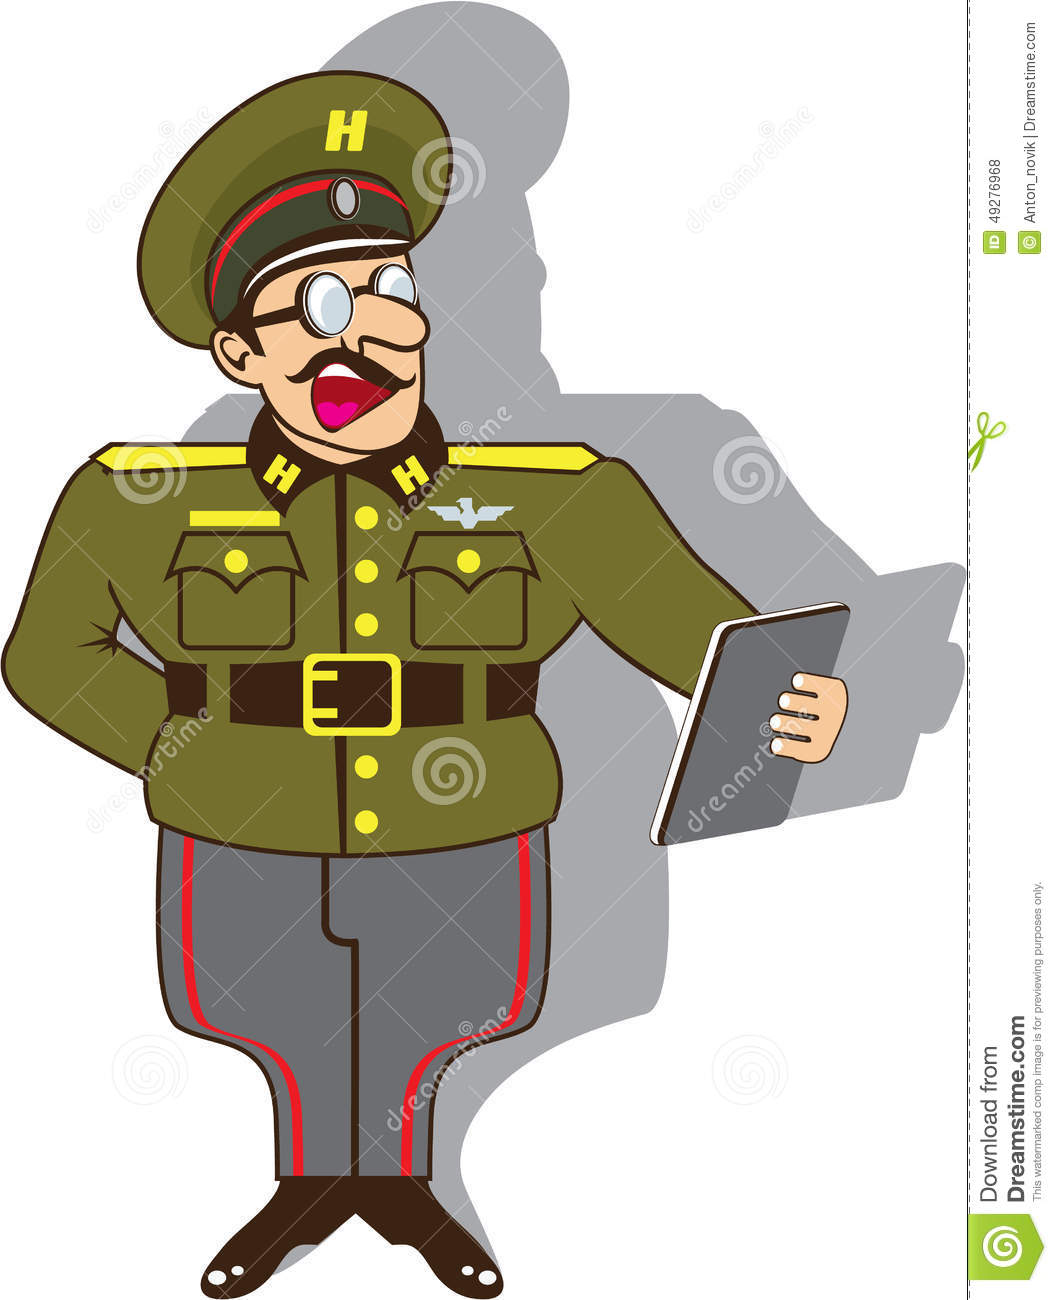 Soldiers clipart england Clipart Military officer Clipart Animated